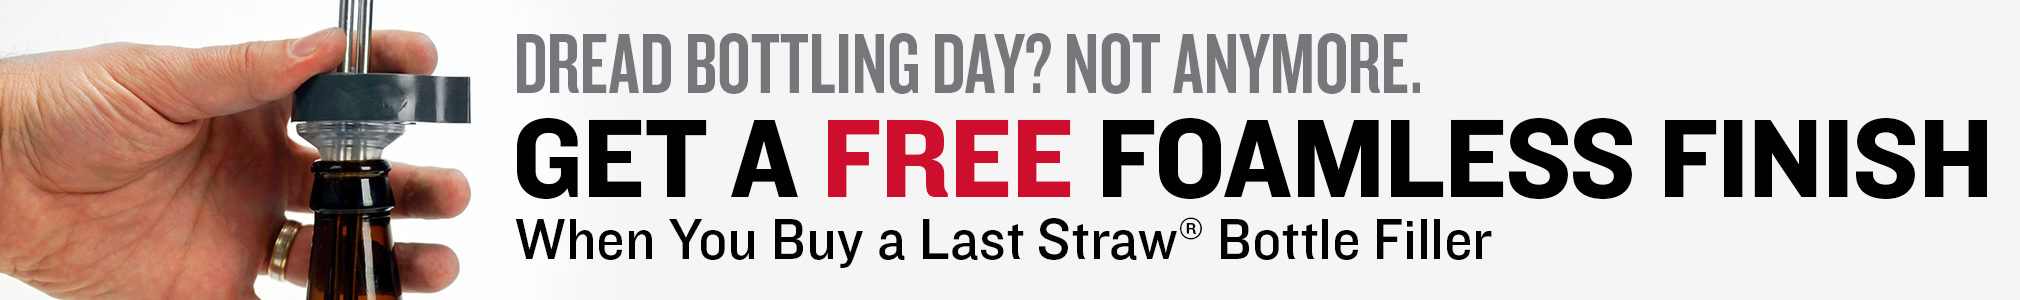 Free Foamless Finish Last Straw® Counterpressure Filler with Purchase of Last Straw®Bottle Filler